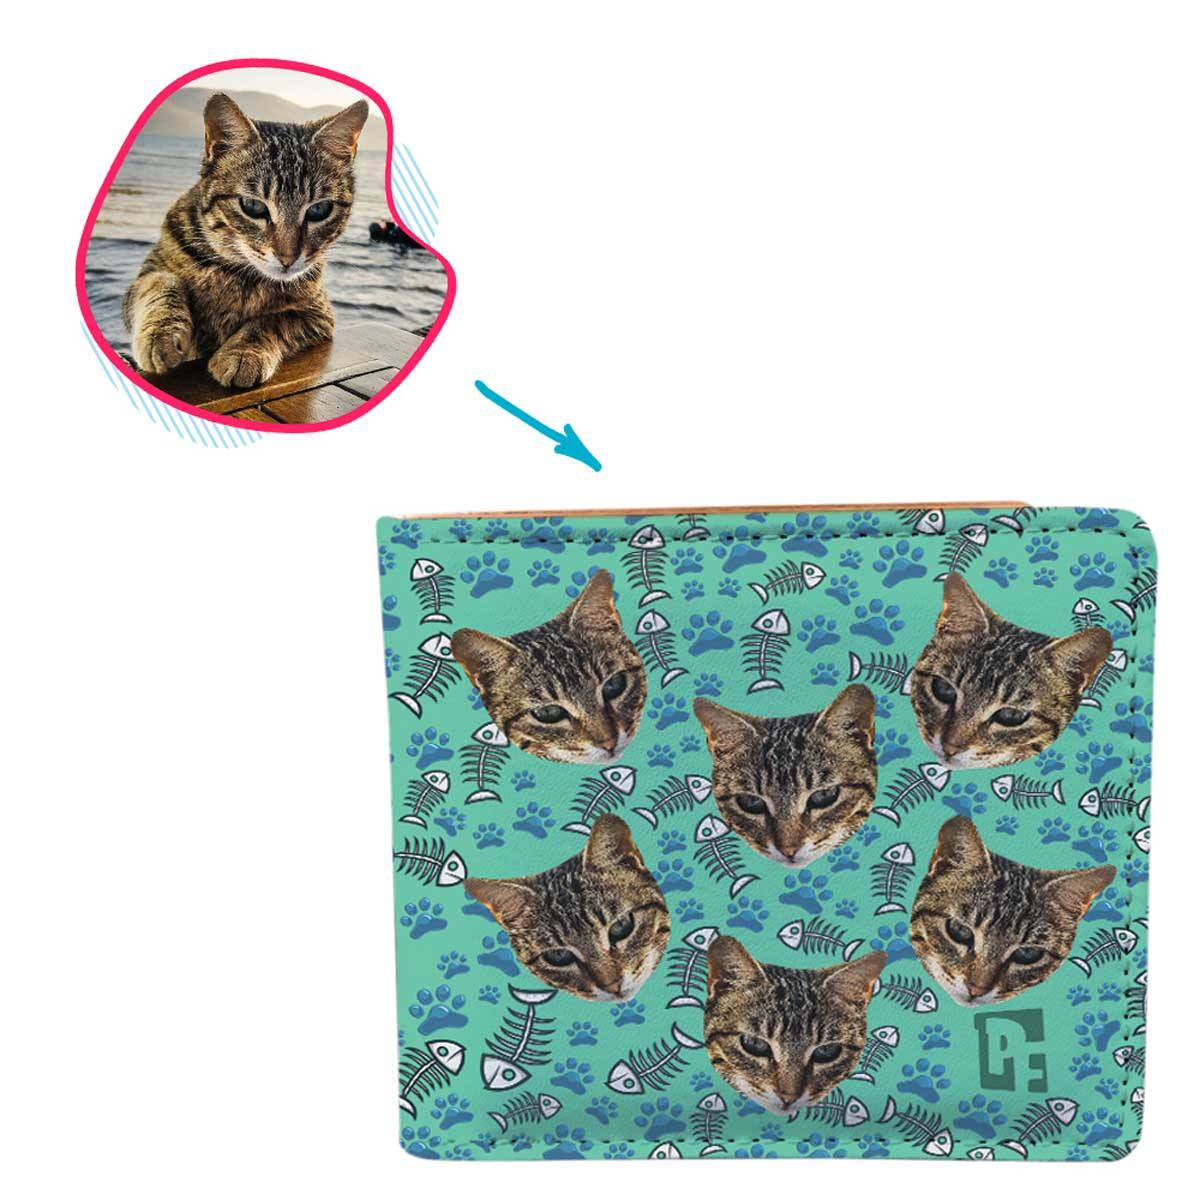 Cat Personalized Wallet